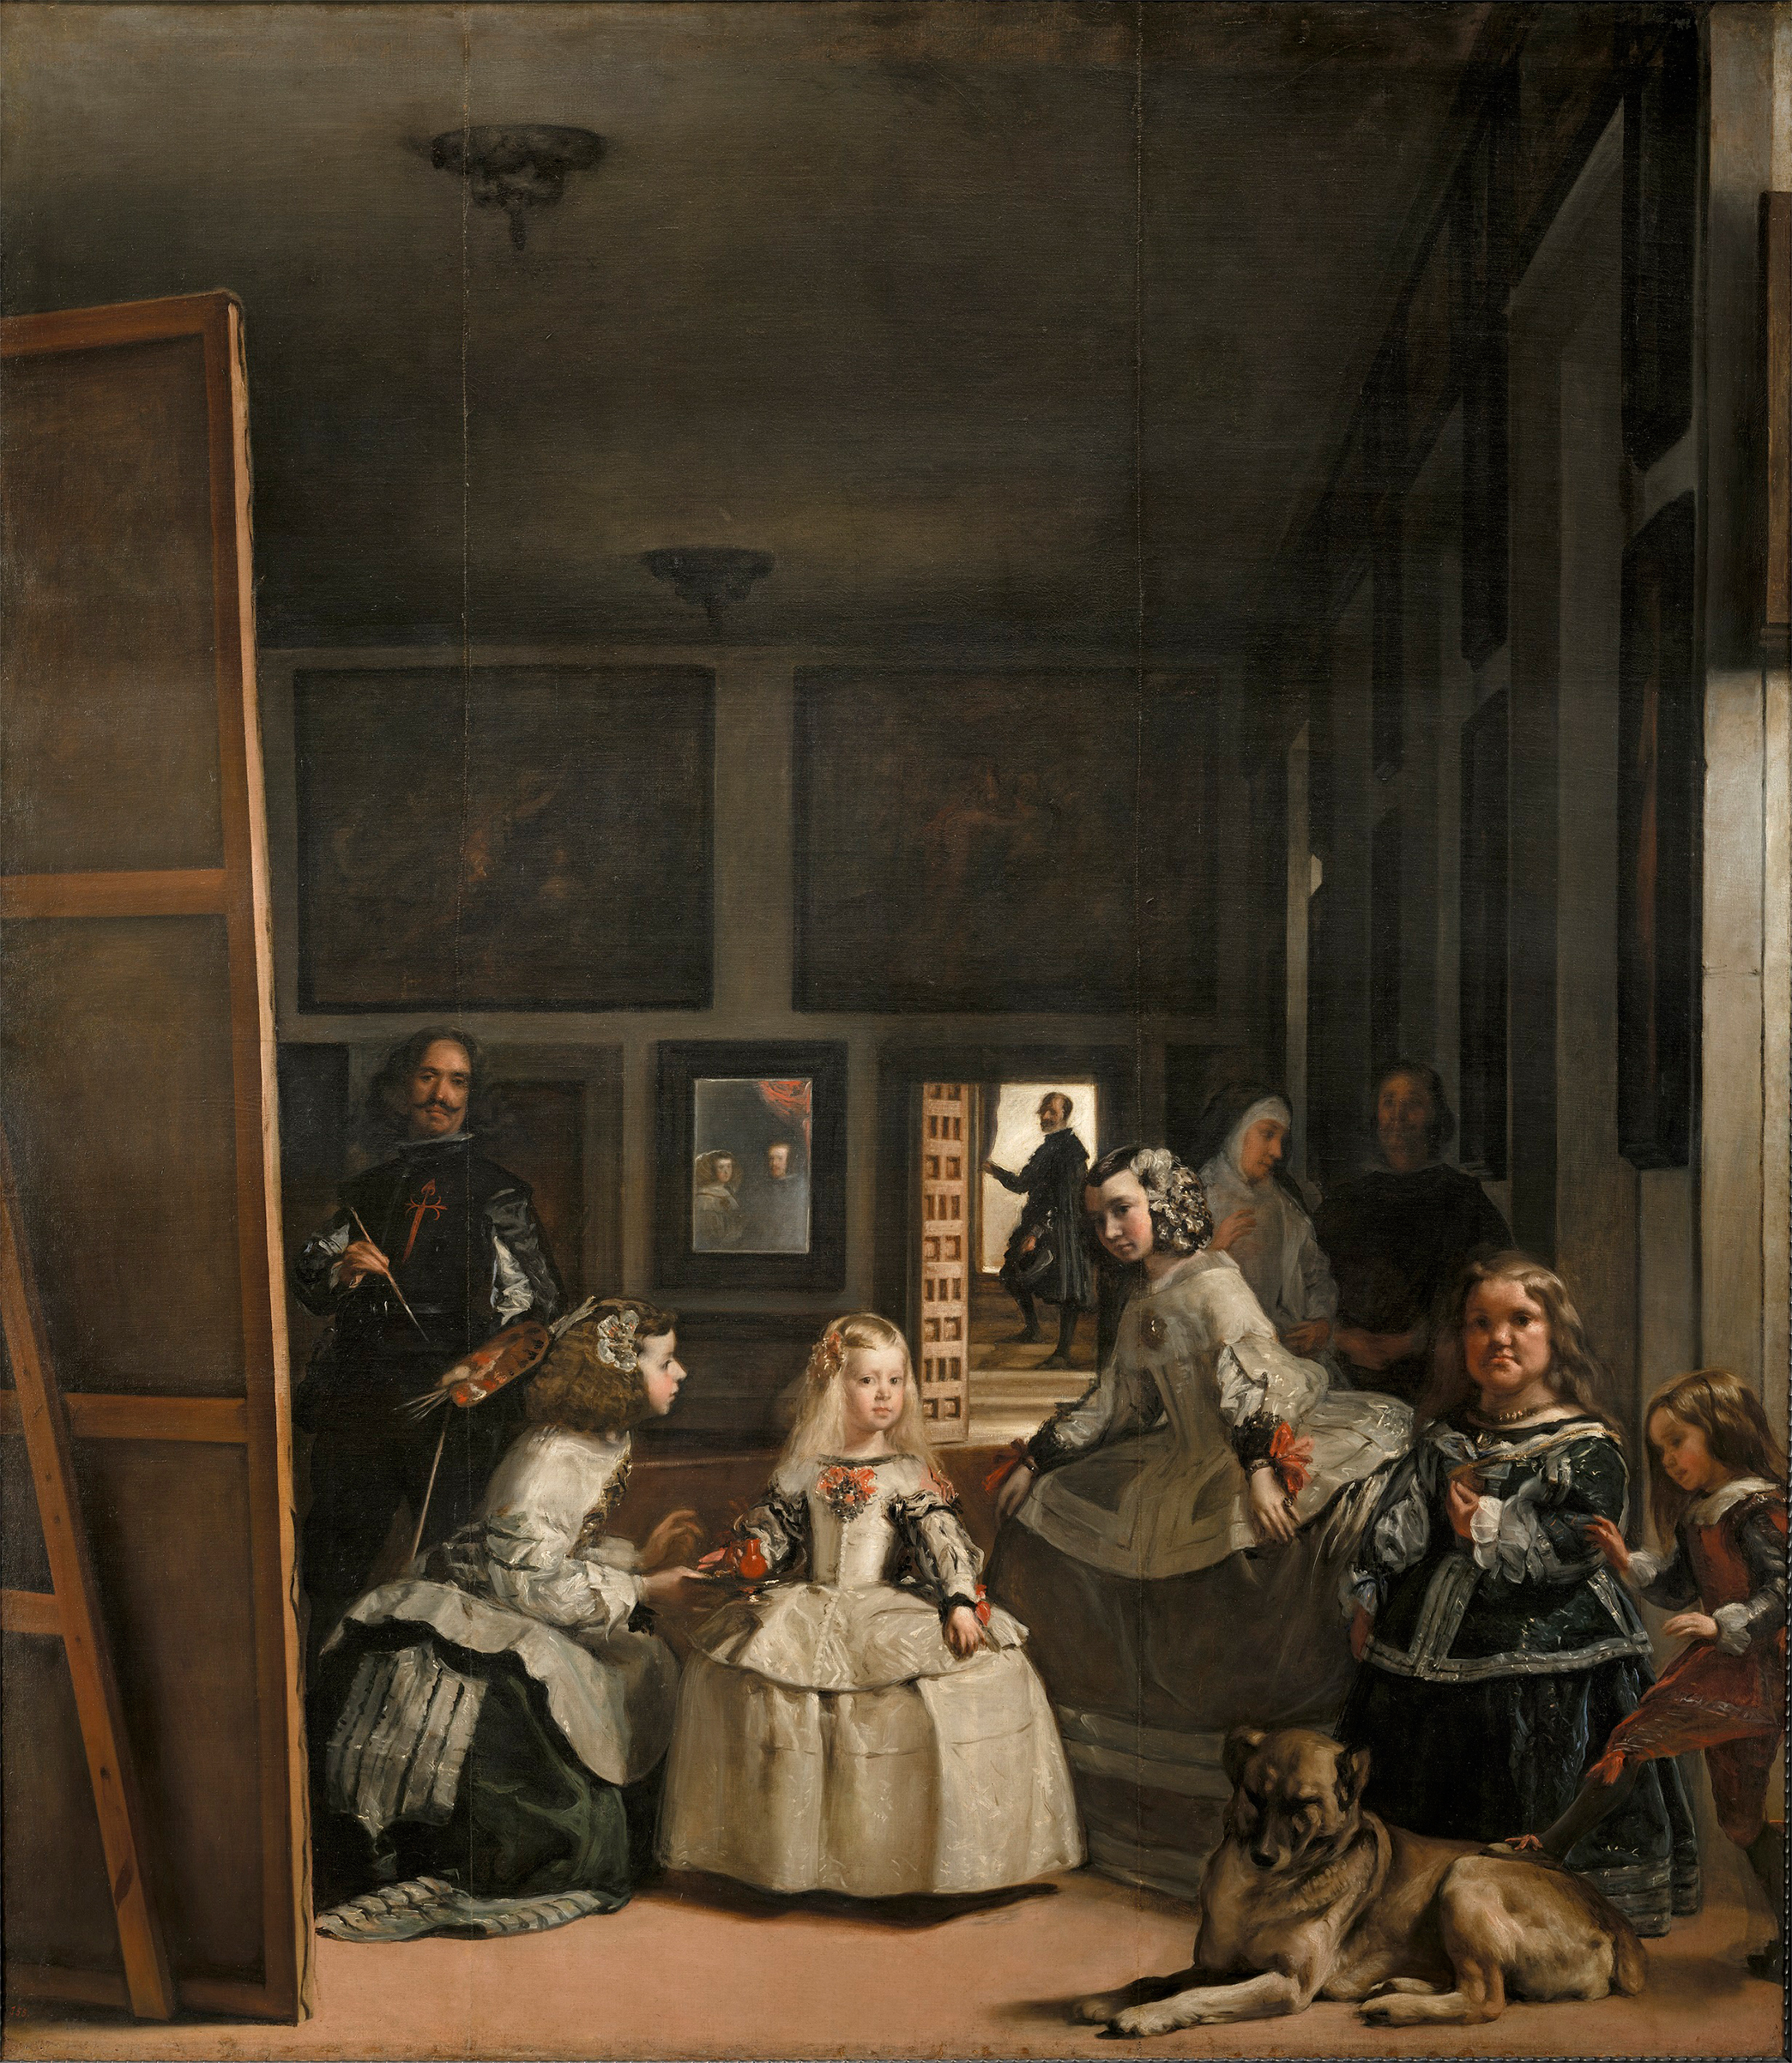 Las Meninas by Diego Velazquez, a 1656 painting of the Spanish royal family with his self portrait.